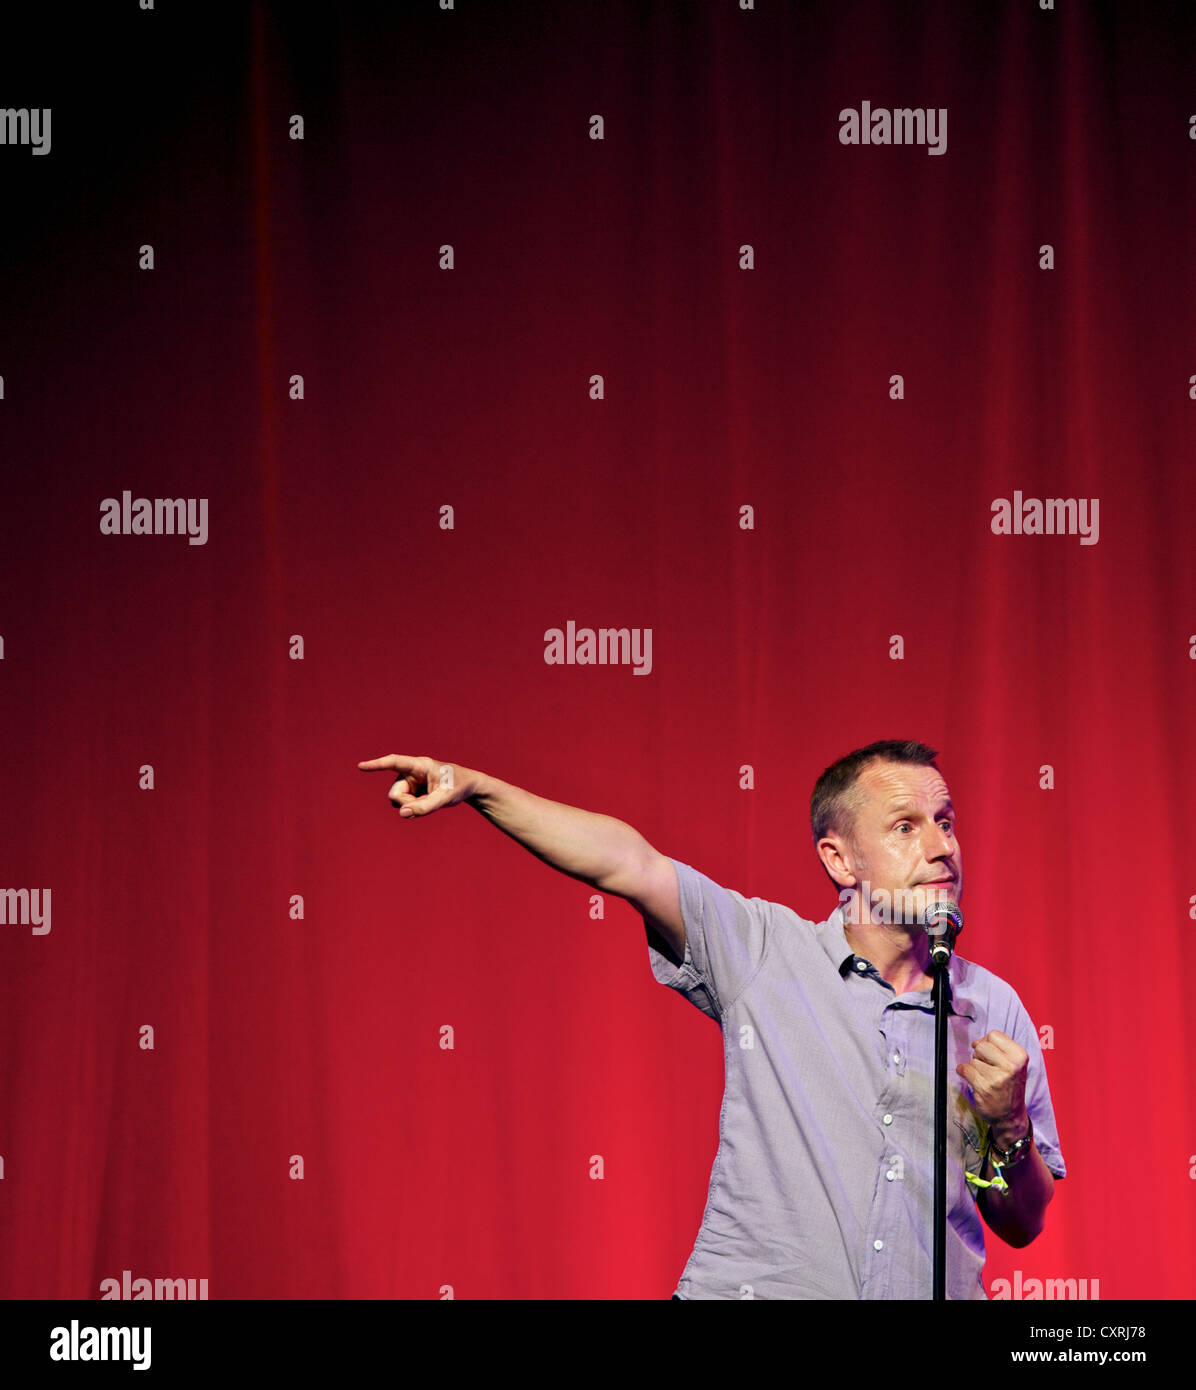 Jeremy Hardy performing at the 2010 Glastonbury Festival of Contemporary and Performing Arts - Stock Image